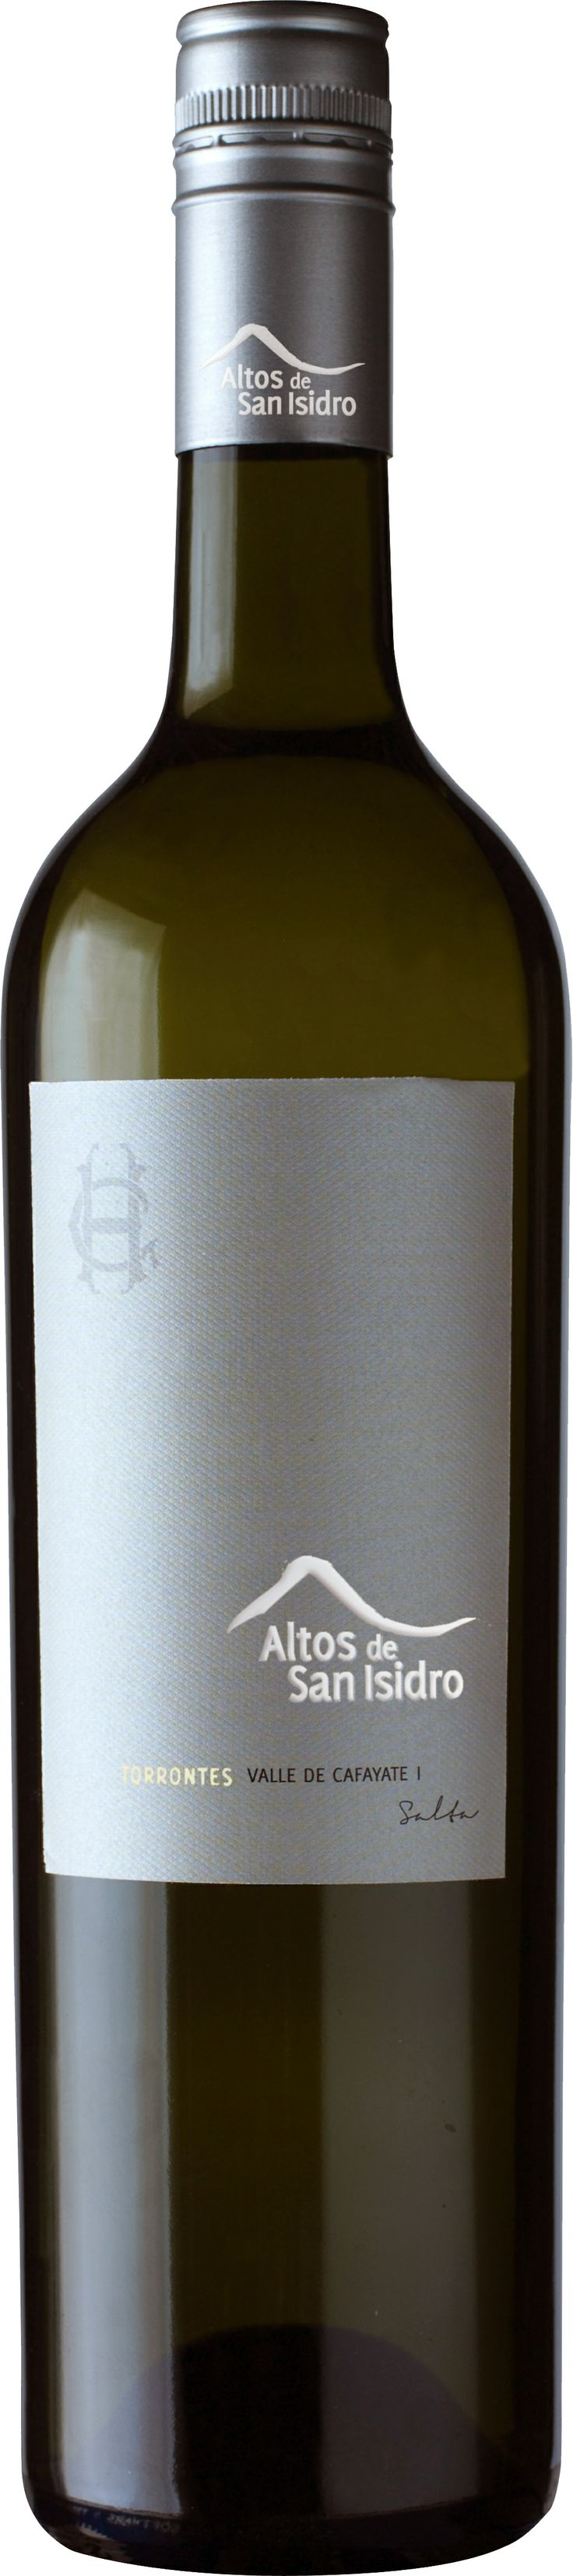 """2011 #ALTOS DE SAN ISIDRO, TORRONTES, CAFAYATE, SALTA, ARGENTINA """"Light golden color, showing off ripe stone fruits, fresh herbs, rose petal, and white pepper. It all follows through vibrantly on the palate and finishes clean with a punch of acidity and spice."""""""